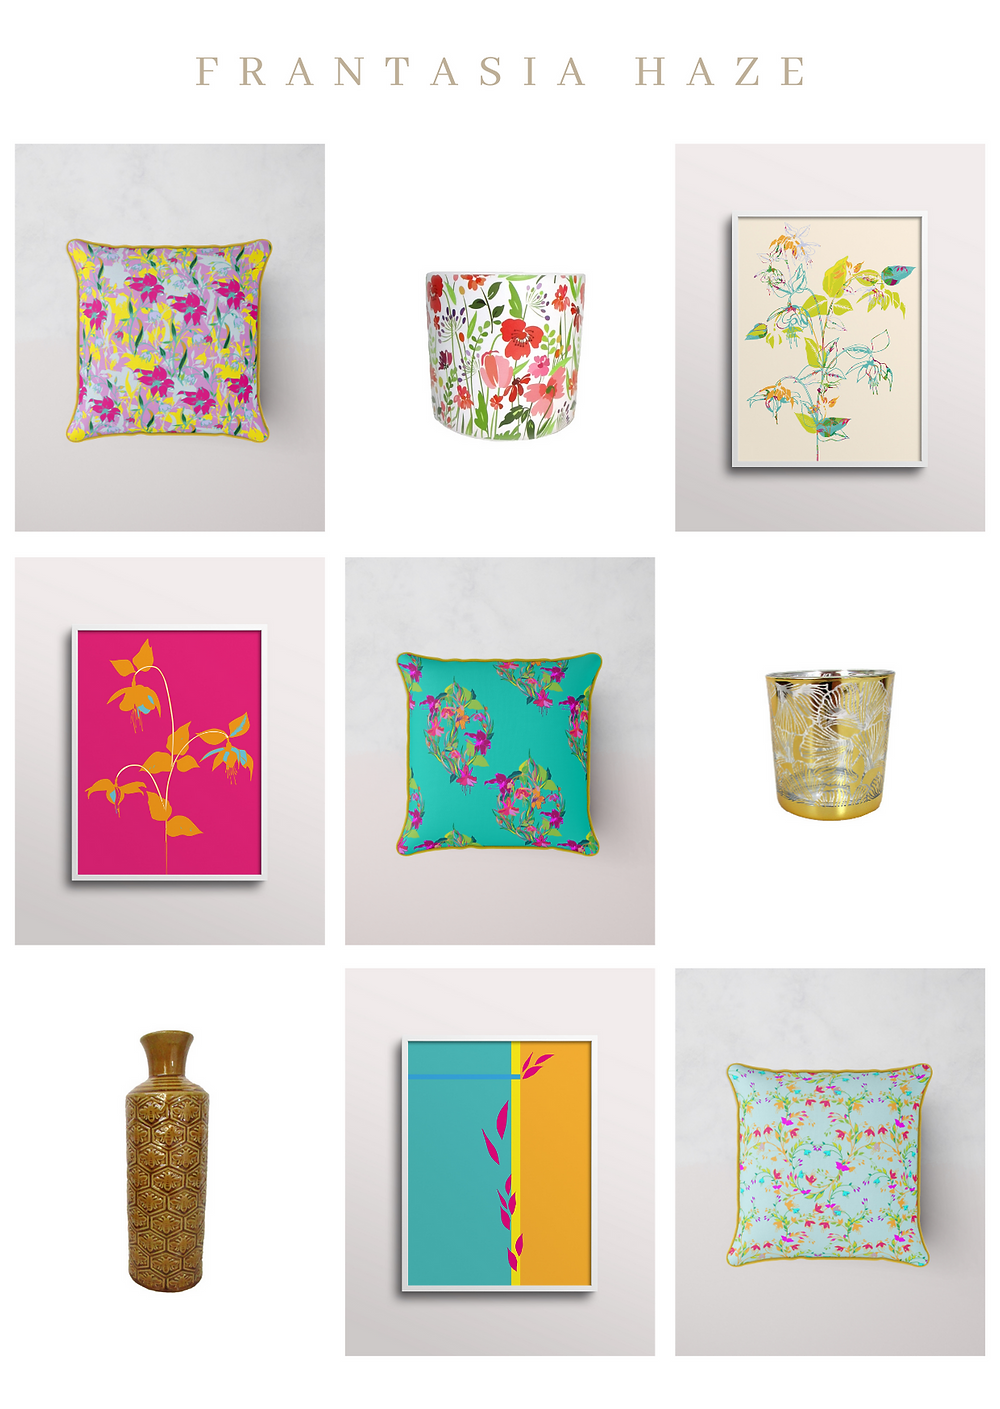 Frantasia Haze Interiors. Homeware. Accessories. Mothers Day Gifts. Floral Cushions. Floral Art. Floral Fabric.